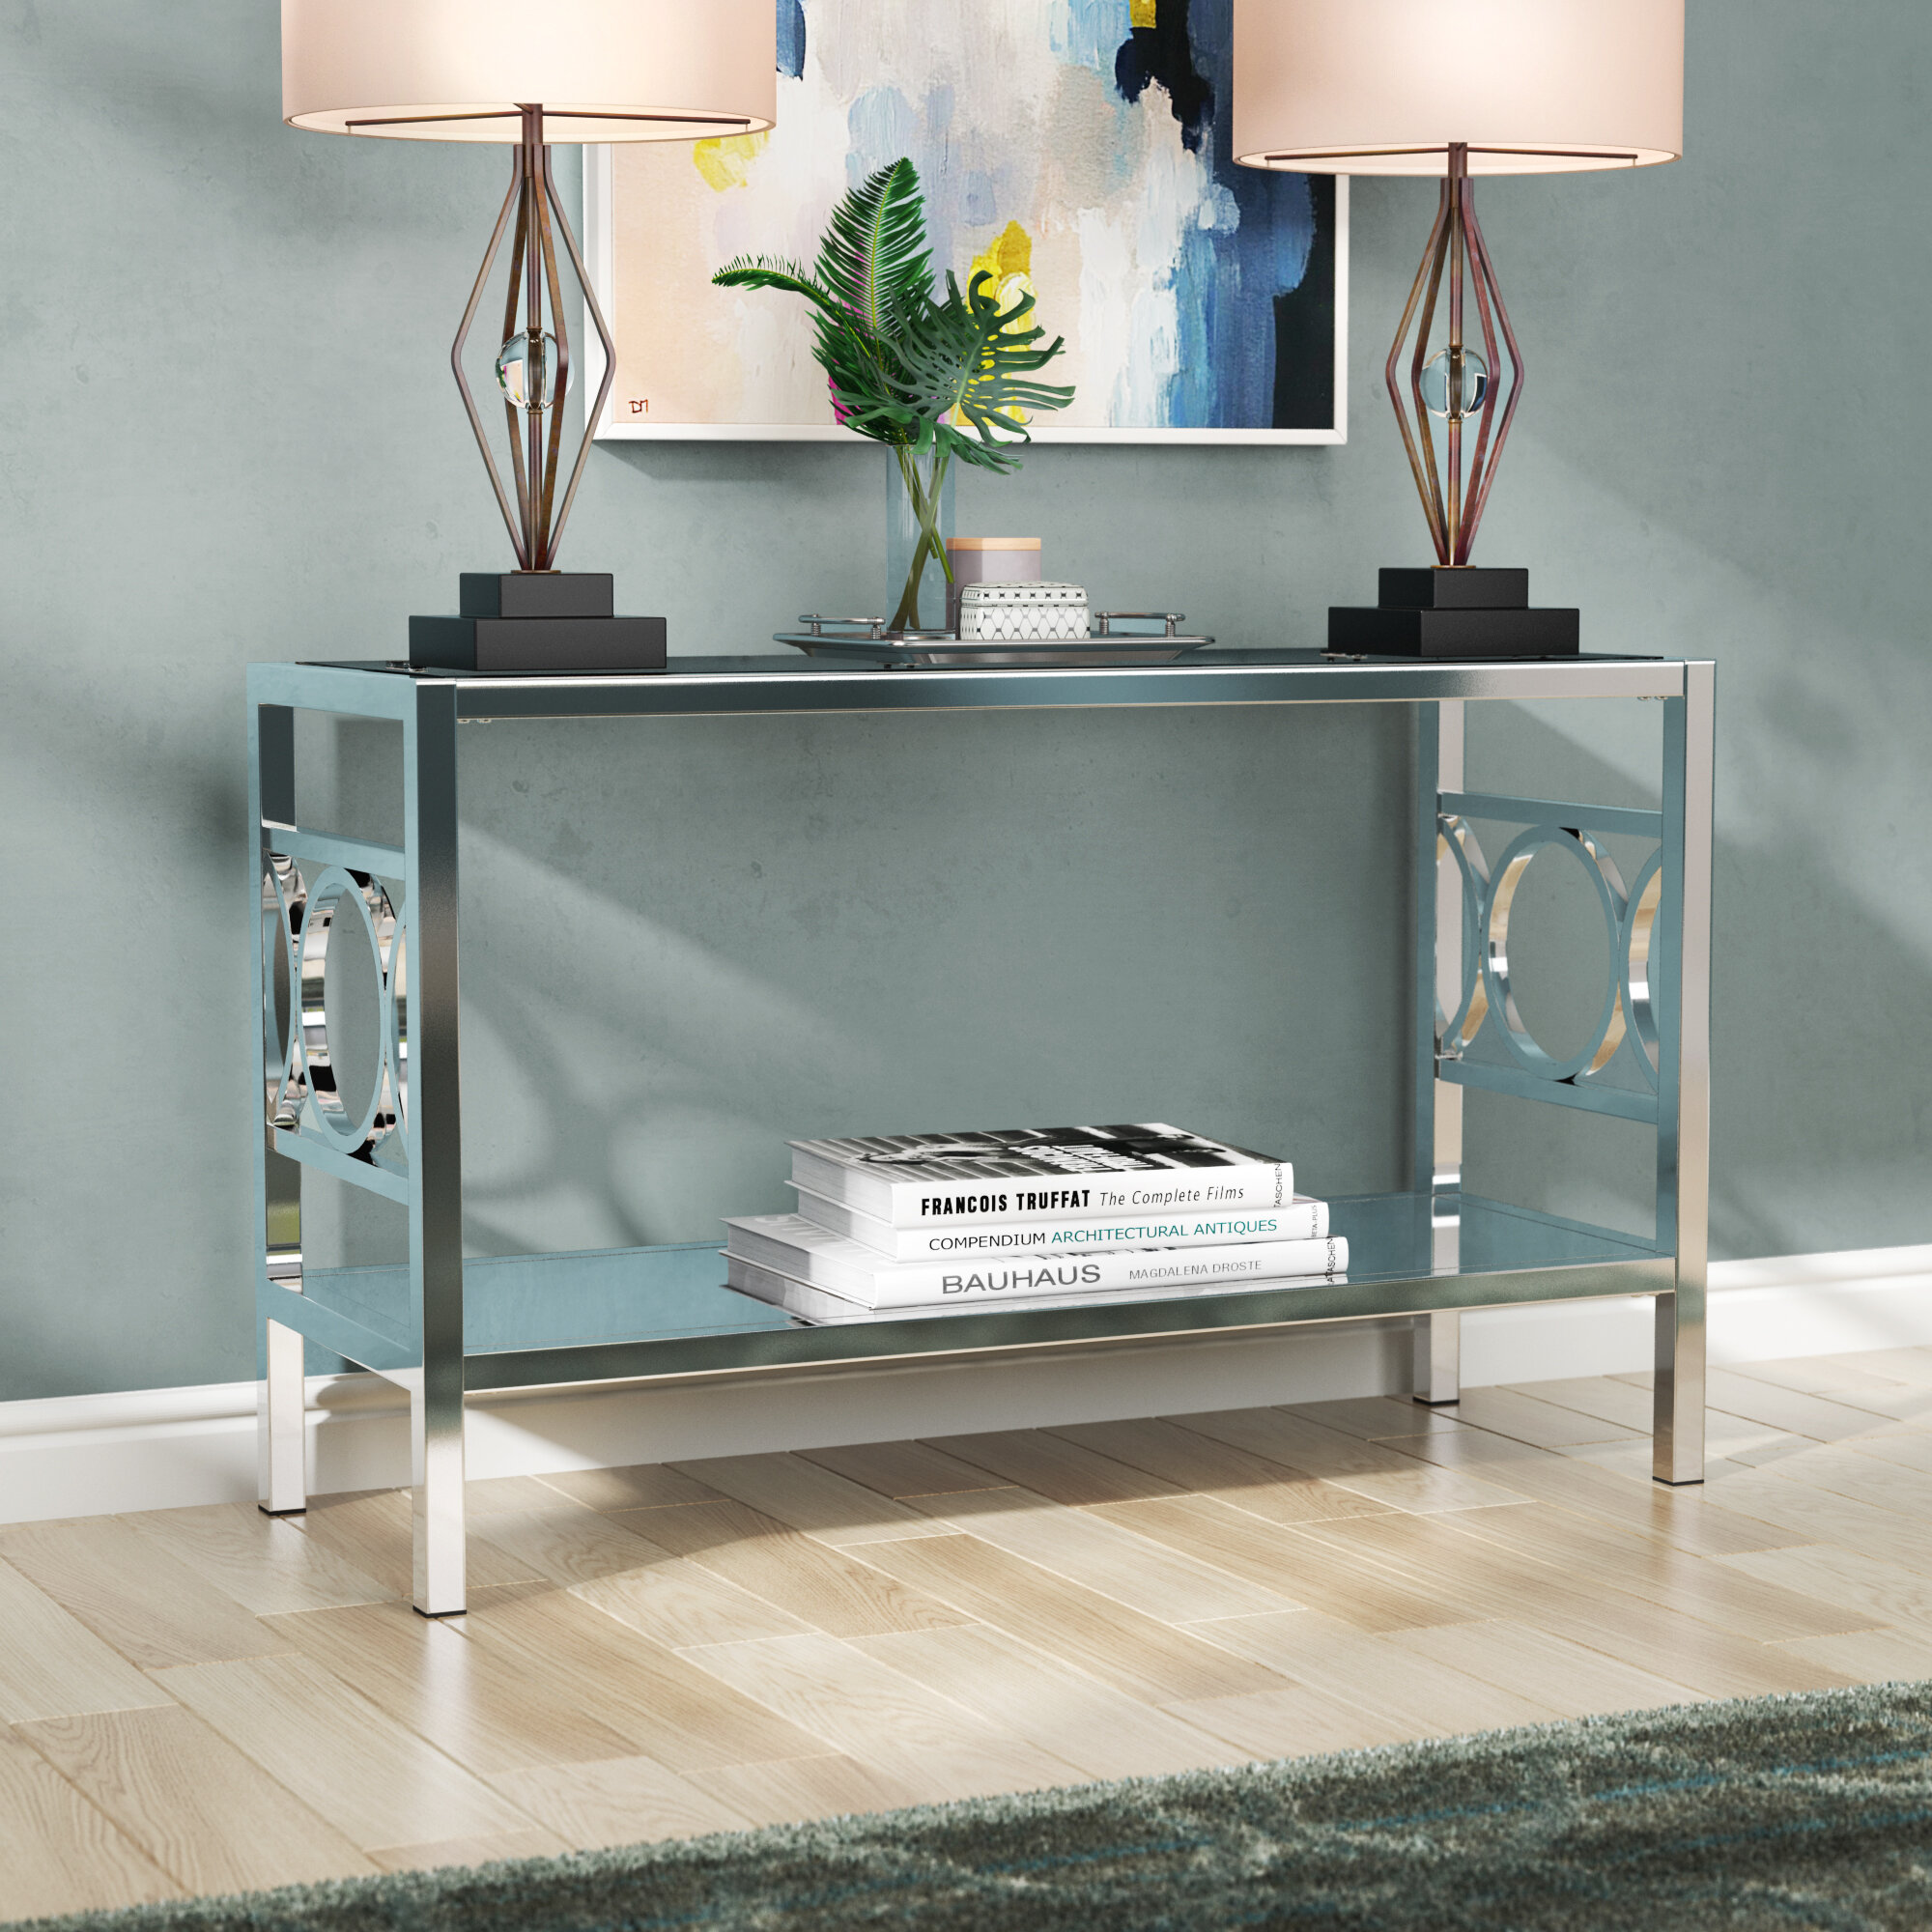 12 Inch Depth All Console Tables | Wayfair